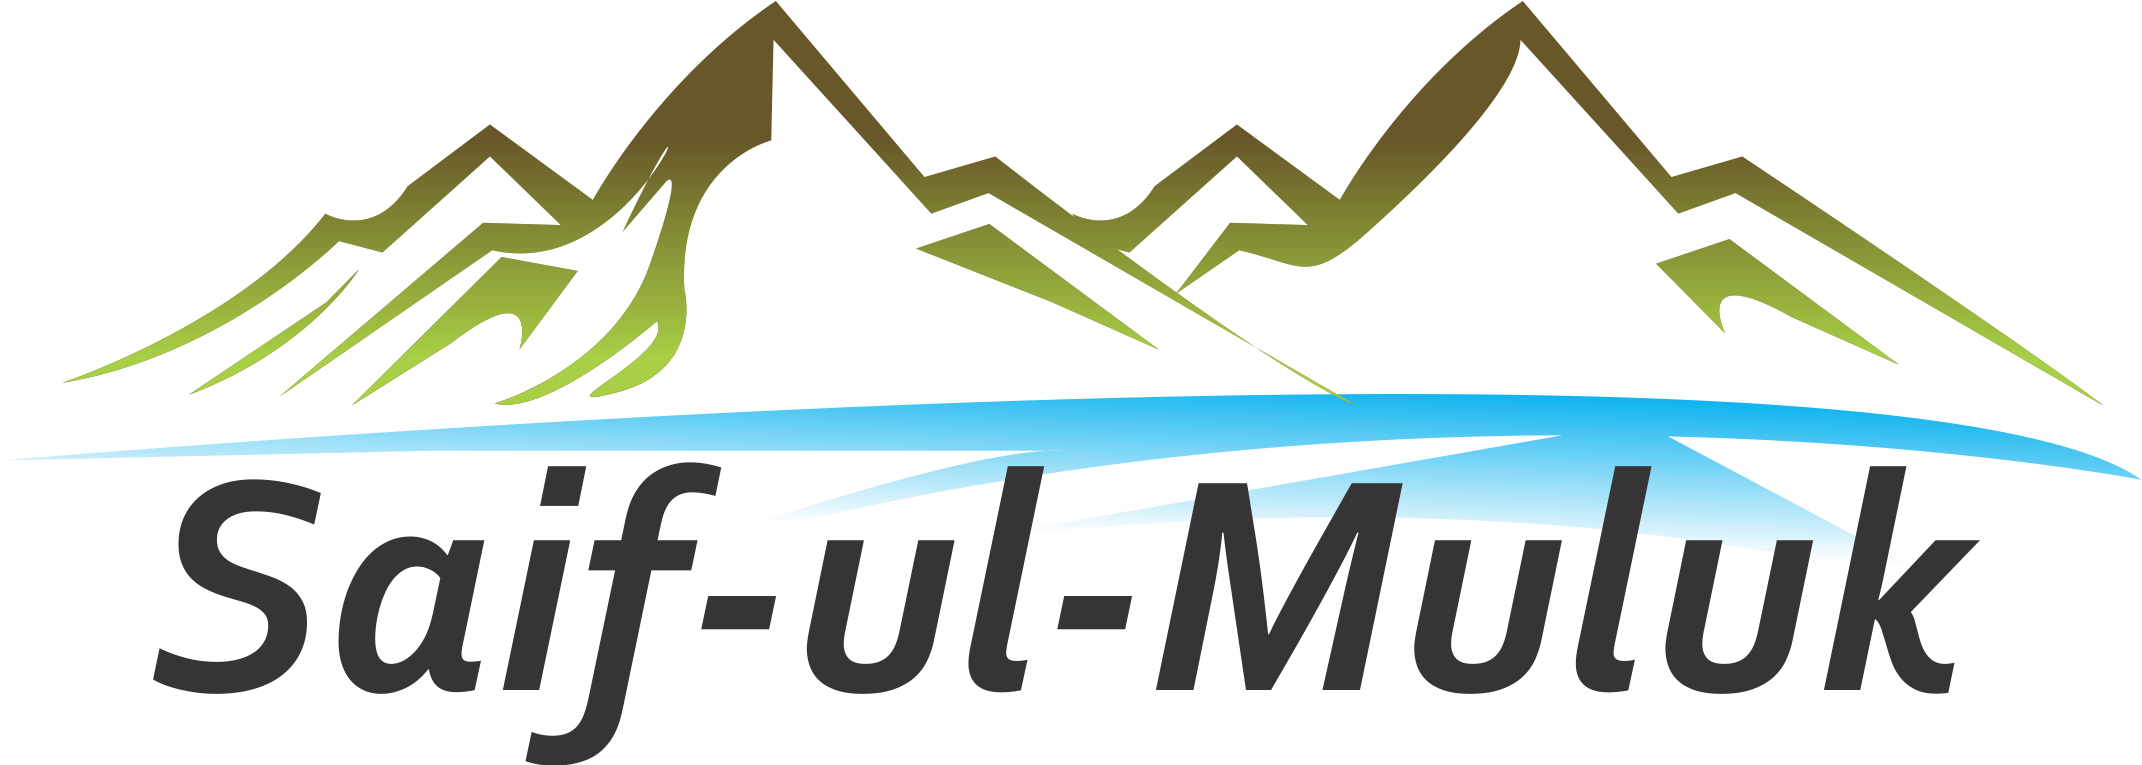 SaifulMuluk Tour and Travel Company | Saif-Ul-Muluk | Hotel Booking in Kaghan Naran Shogran | Saiful Muluk